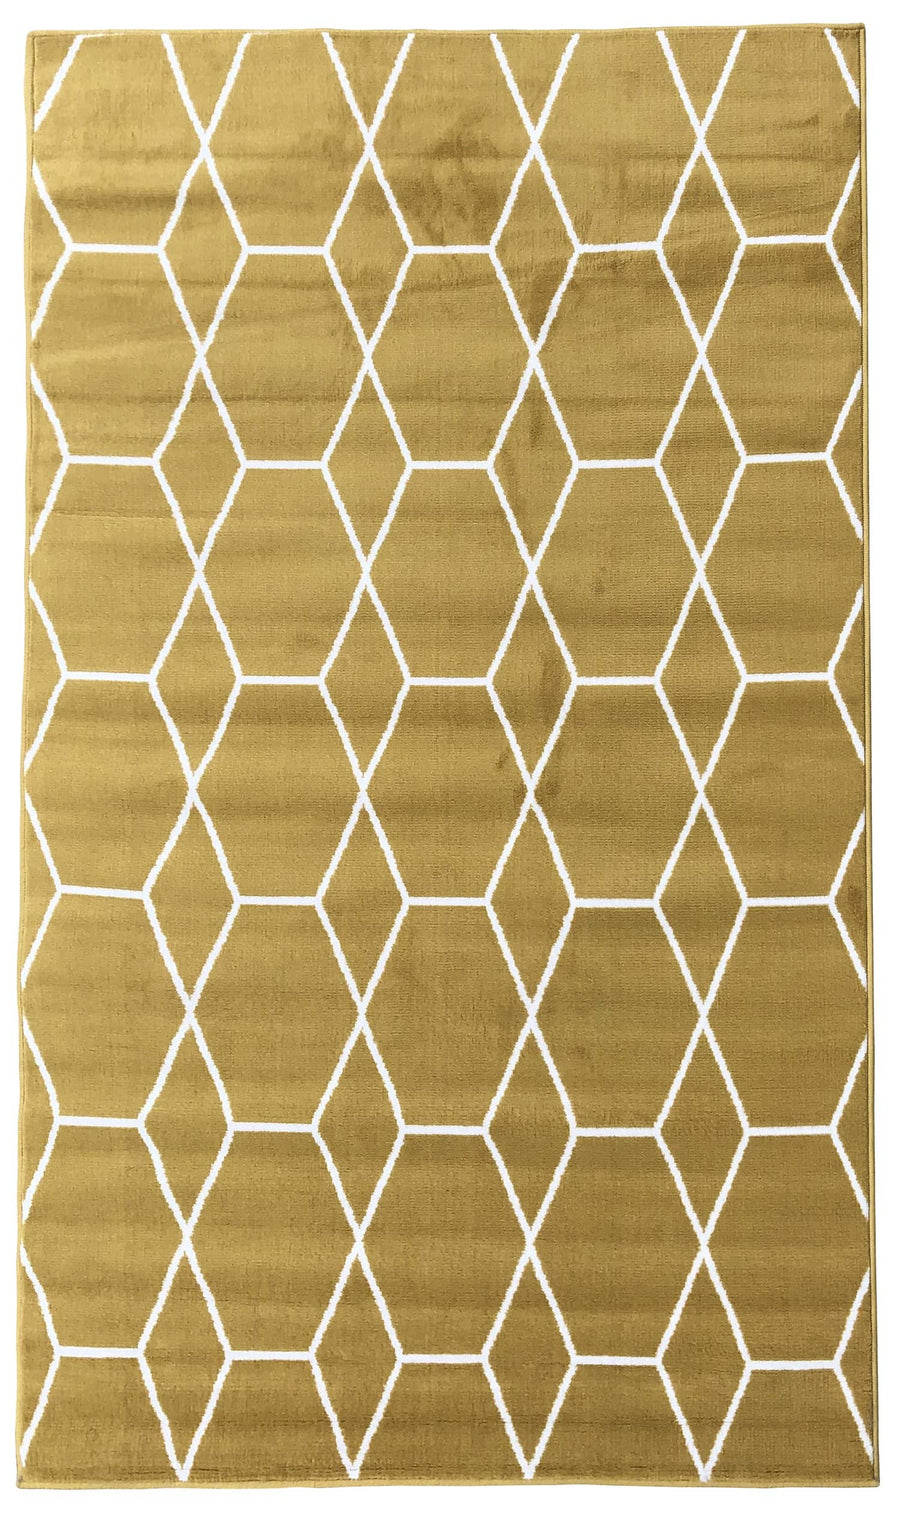 180 Yellow Moroccan collection area rug